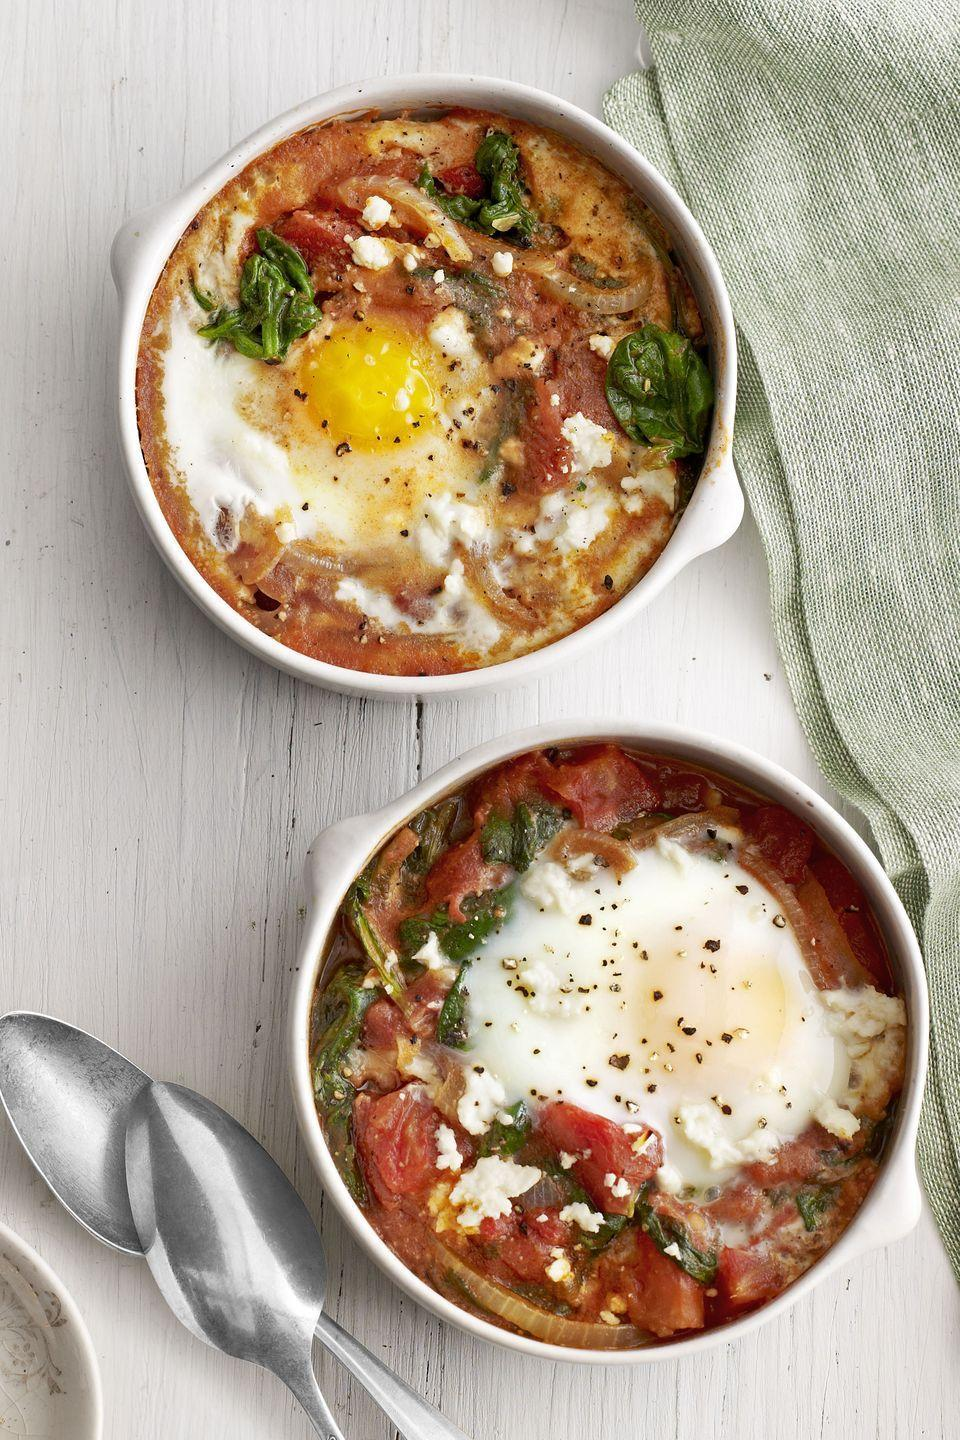 "<p>Baked eggs are super easy to pull together, so whip these up when you're in a hurry or want a more <a href=""https://www.womansday.com/weeknight-dinners/"" rel=""nofollow noopener"" target=""_blank"" data-ylk=""slk:laidback dinner"" class=""link rapid-noclick-resp"">laidback dinner</a>. </p><p><a href=""https://www.womansday.com/food-recipes/food-drinks/recipes/a39355/baked-eggs-spinach-tomato-recipe-clv0313/"" rel=""nofollow noopener"" target=""_blank"" data-ylk=""slk:Get the Baked Eggs with Spinach and Tomato recipe."" class=""link rapid-noclick-resp""><em>Get the Baked Eggs with Spinach and Tomato recipe.</em></a></p>"